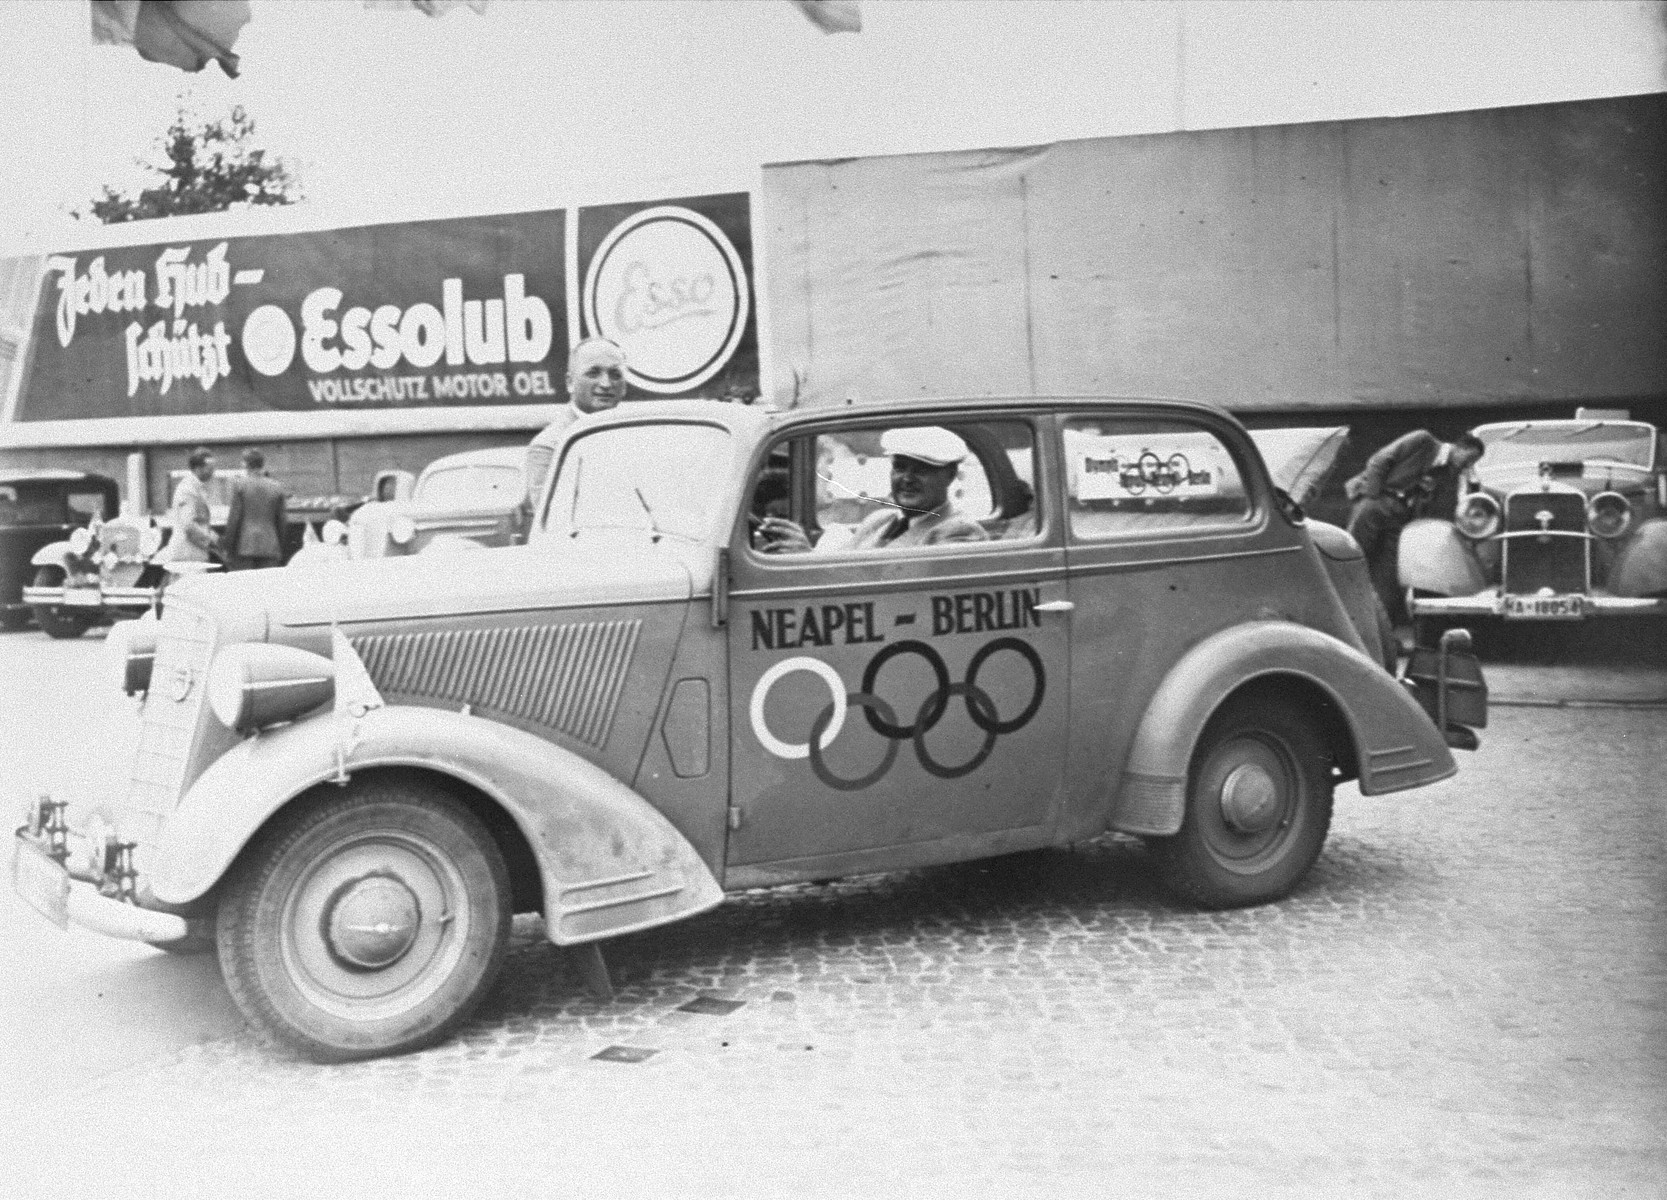 A Berlin taxi decorated for the Olympic Games.